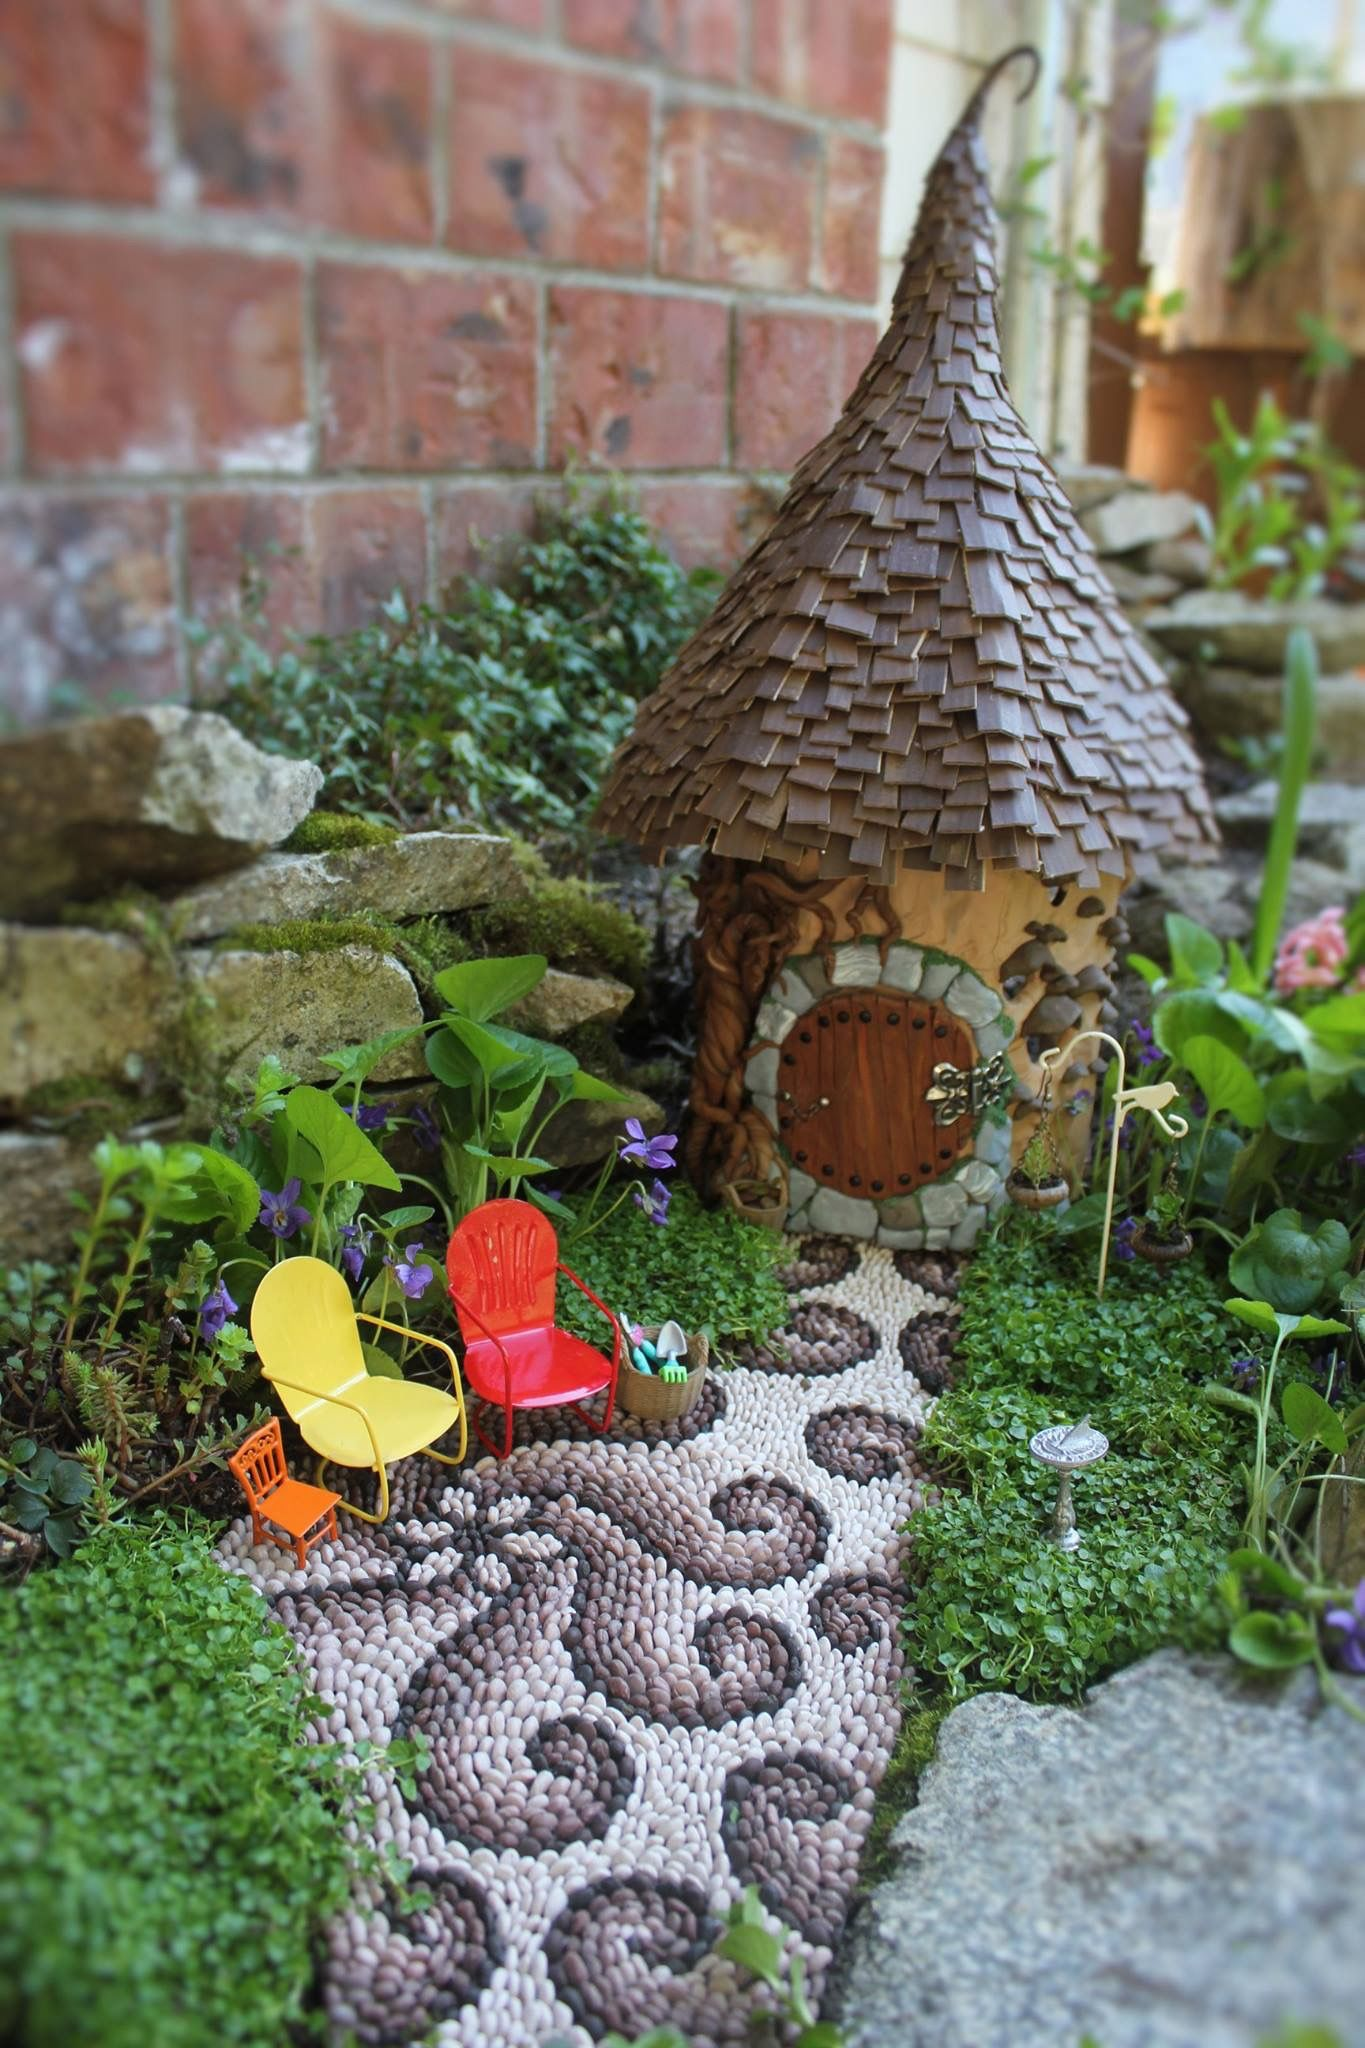 Pin by Margaret Pucilowski on Diy fairy garden Pinterest